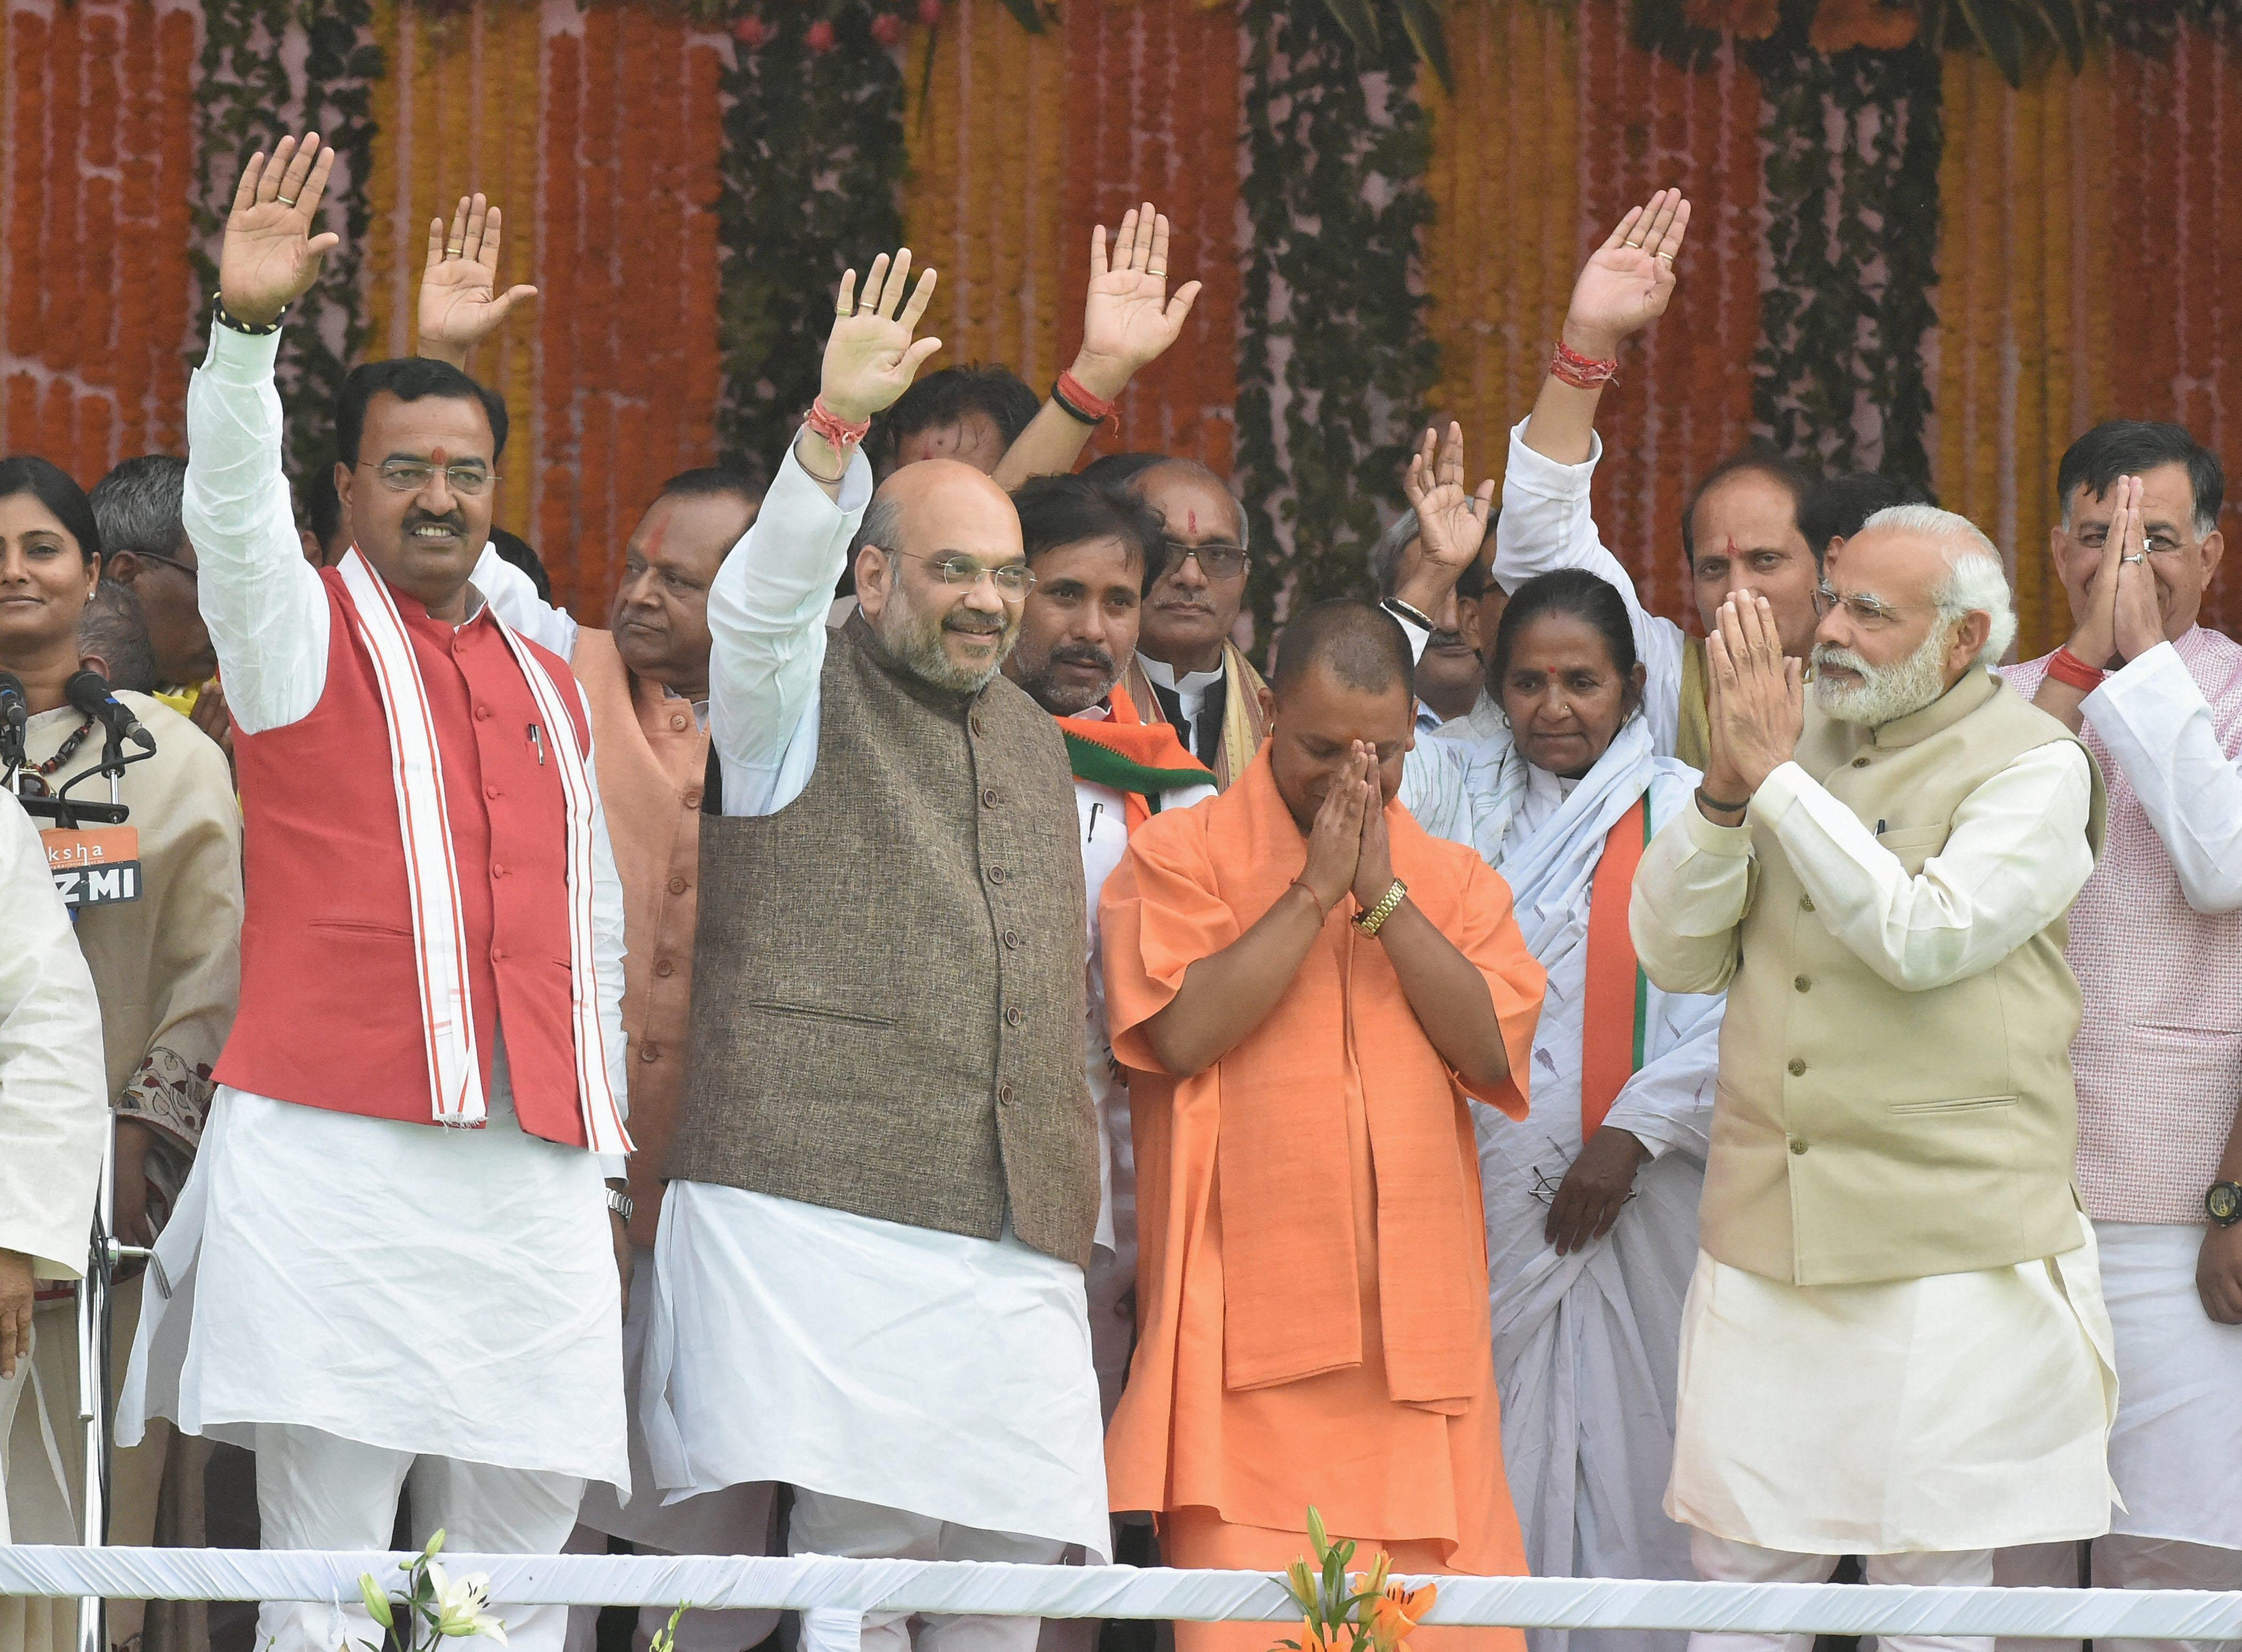 Prime Minister Narendra Modi, BJP president Amit Shah, the newly sworn-in chief minister of Uttar Pradesh Yogi Adityanath and ministers after the oath ceremony in Lucknow on Sunday. Credit: PTI/Nand Kumar